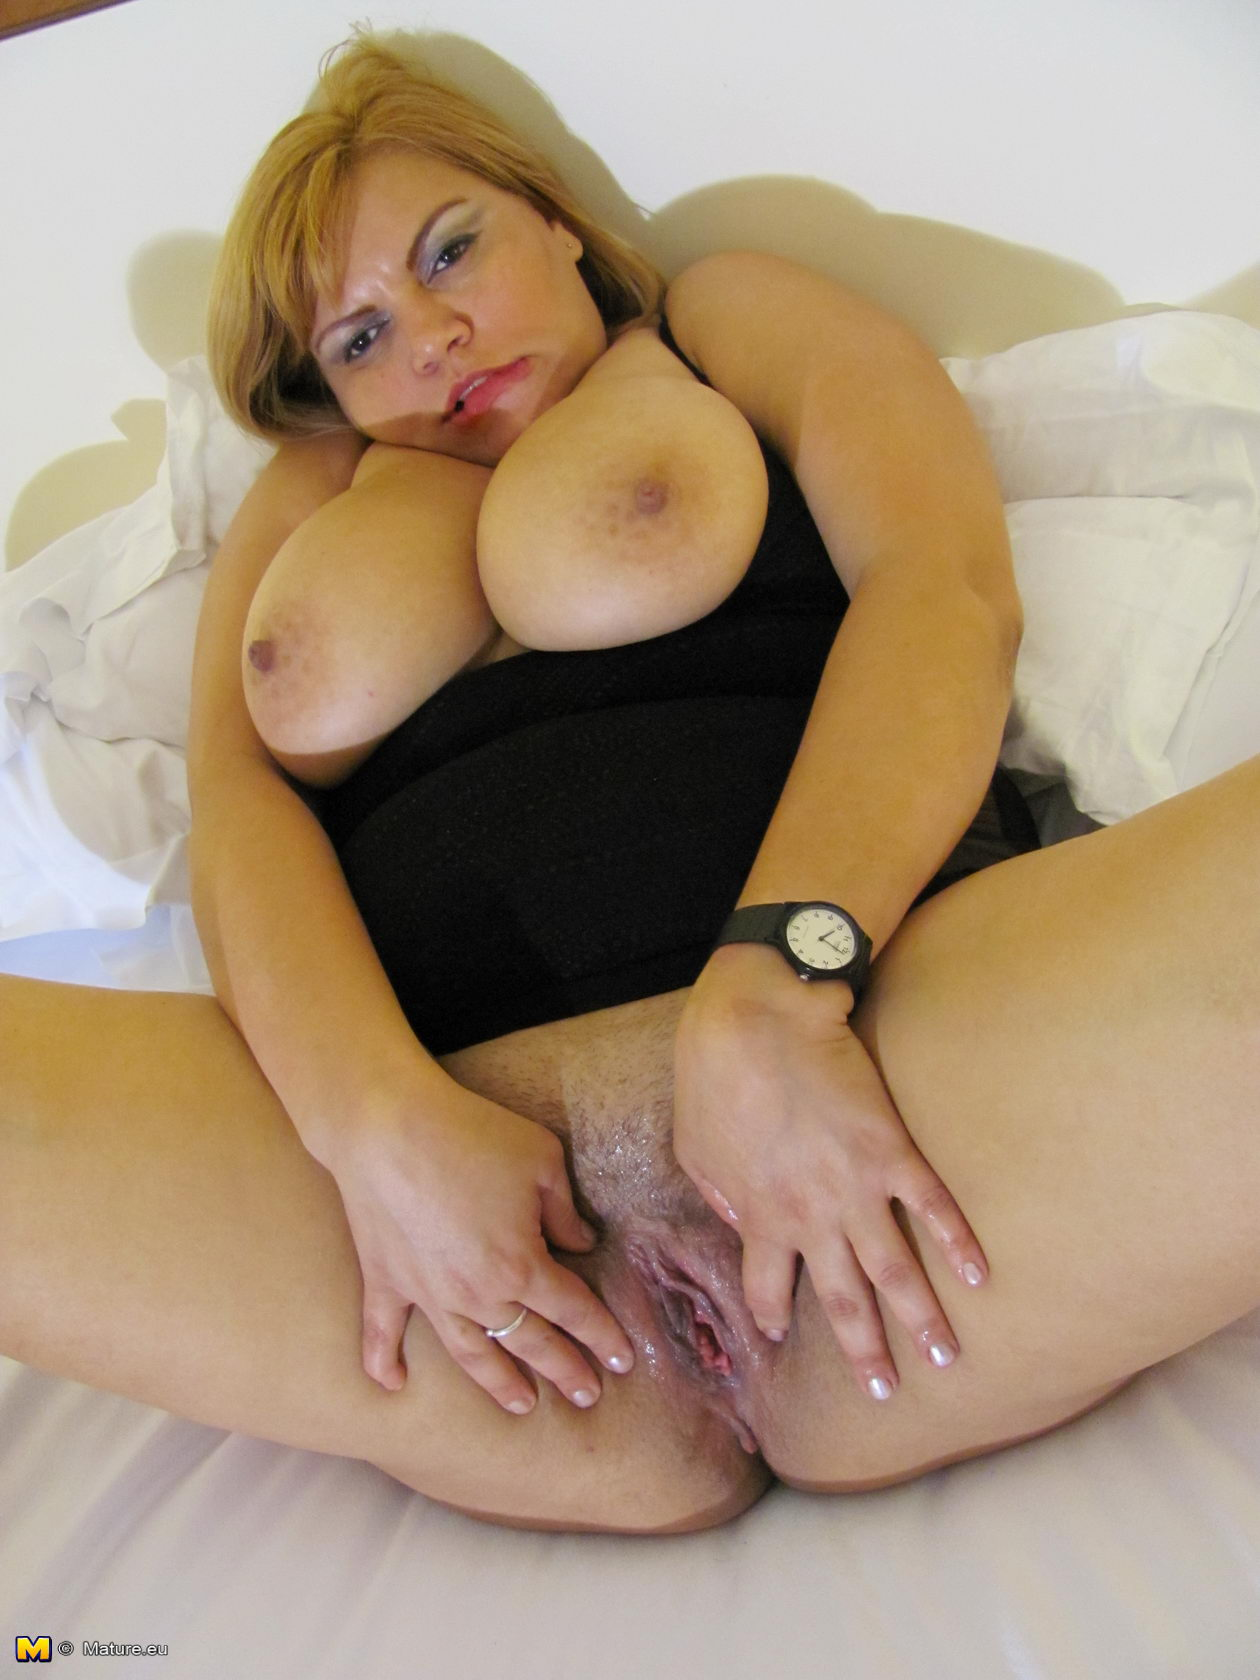 Busty milf nude toying suggest you